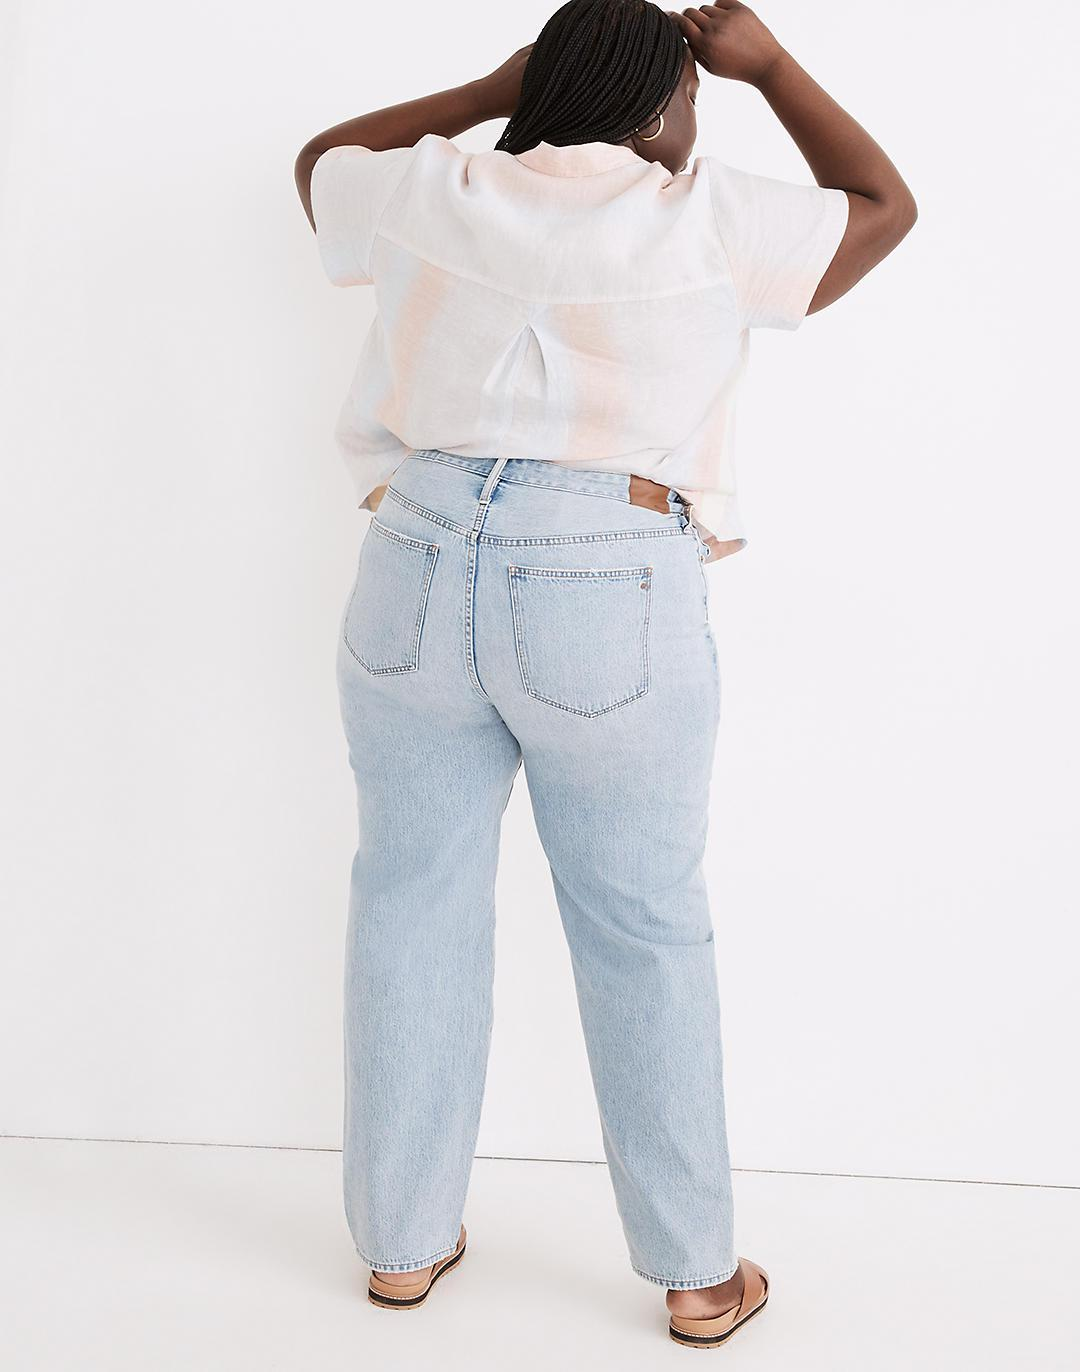 Plus Relaxed Jeans in Cresthaven Wash: Ripped Edition 2